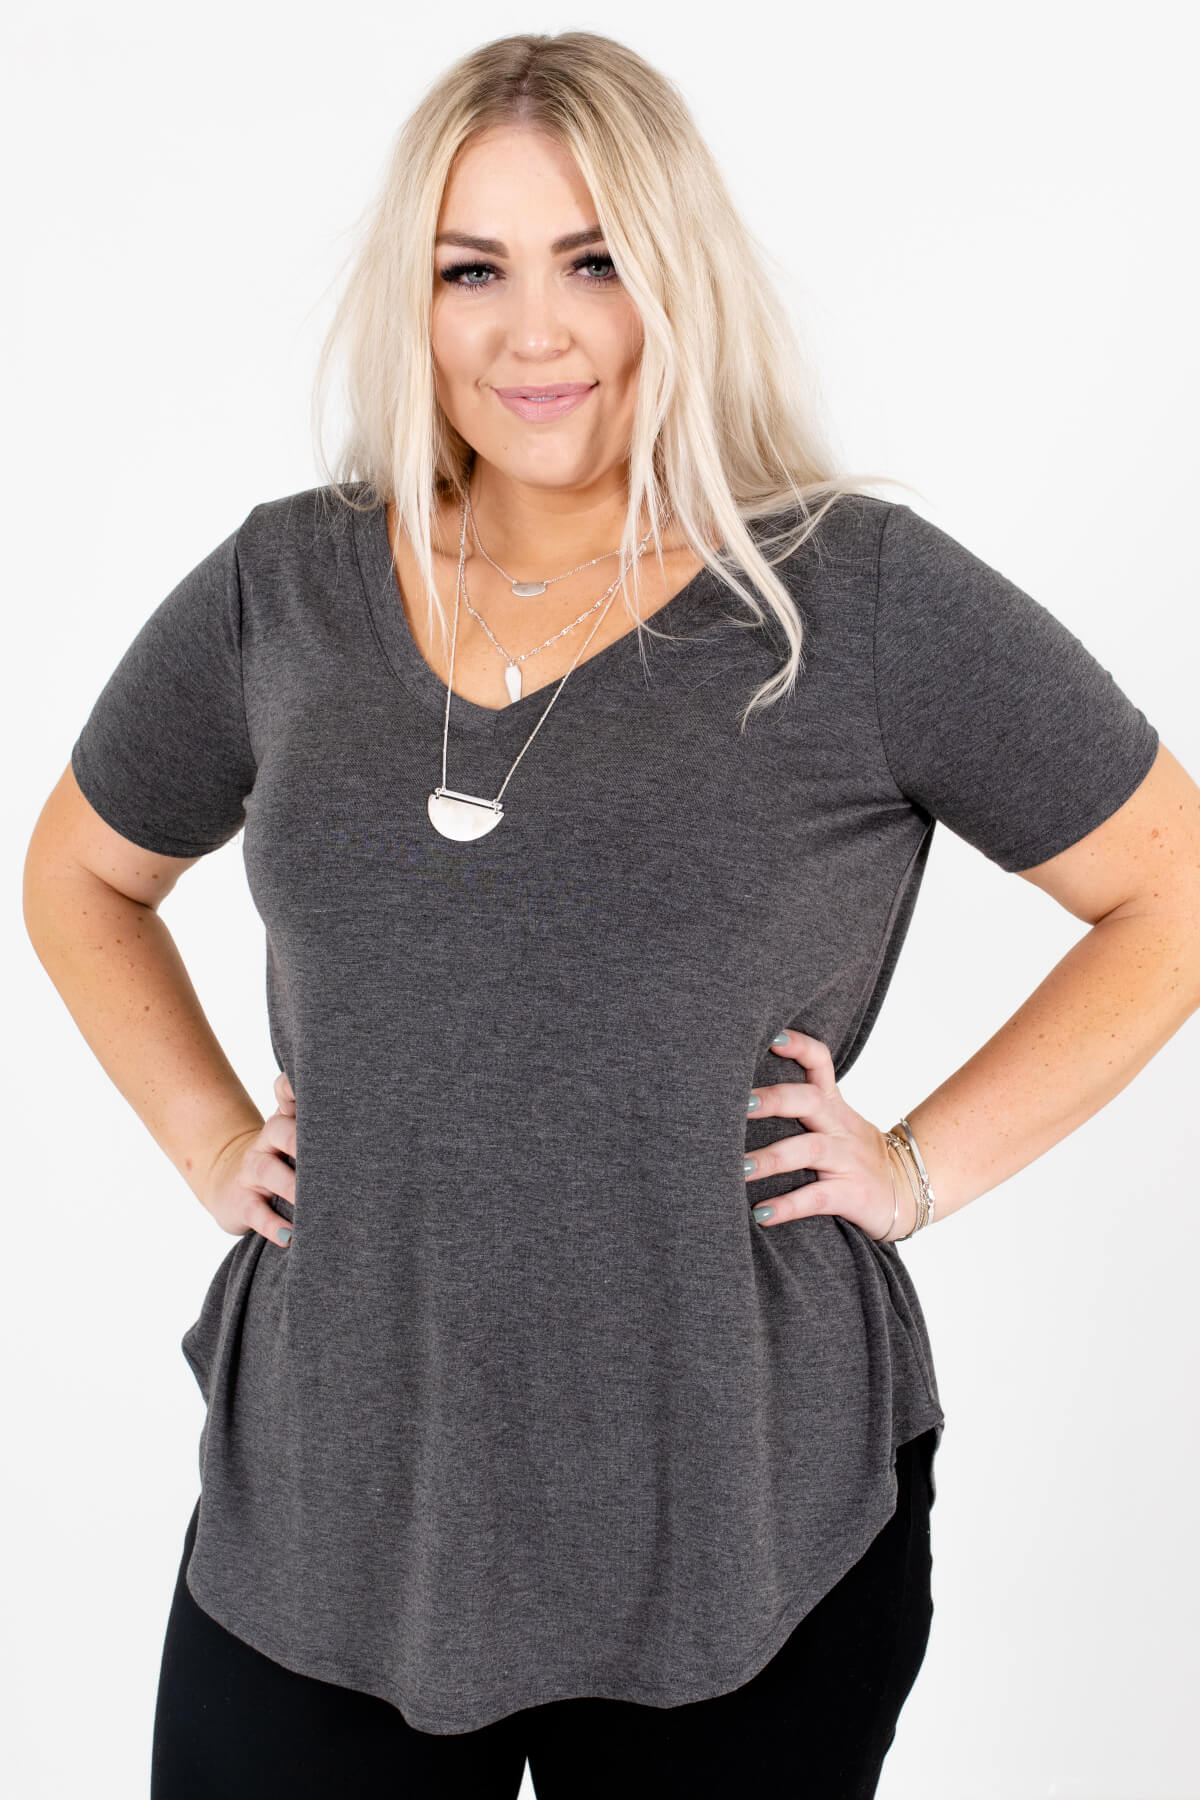 Charcoal Gray V-Neckline Boutique Tops for Women